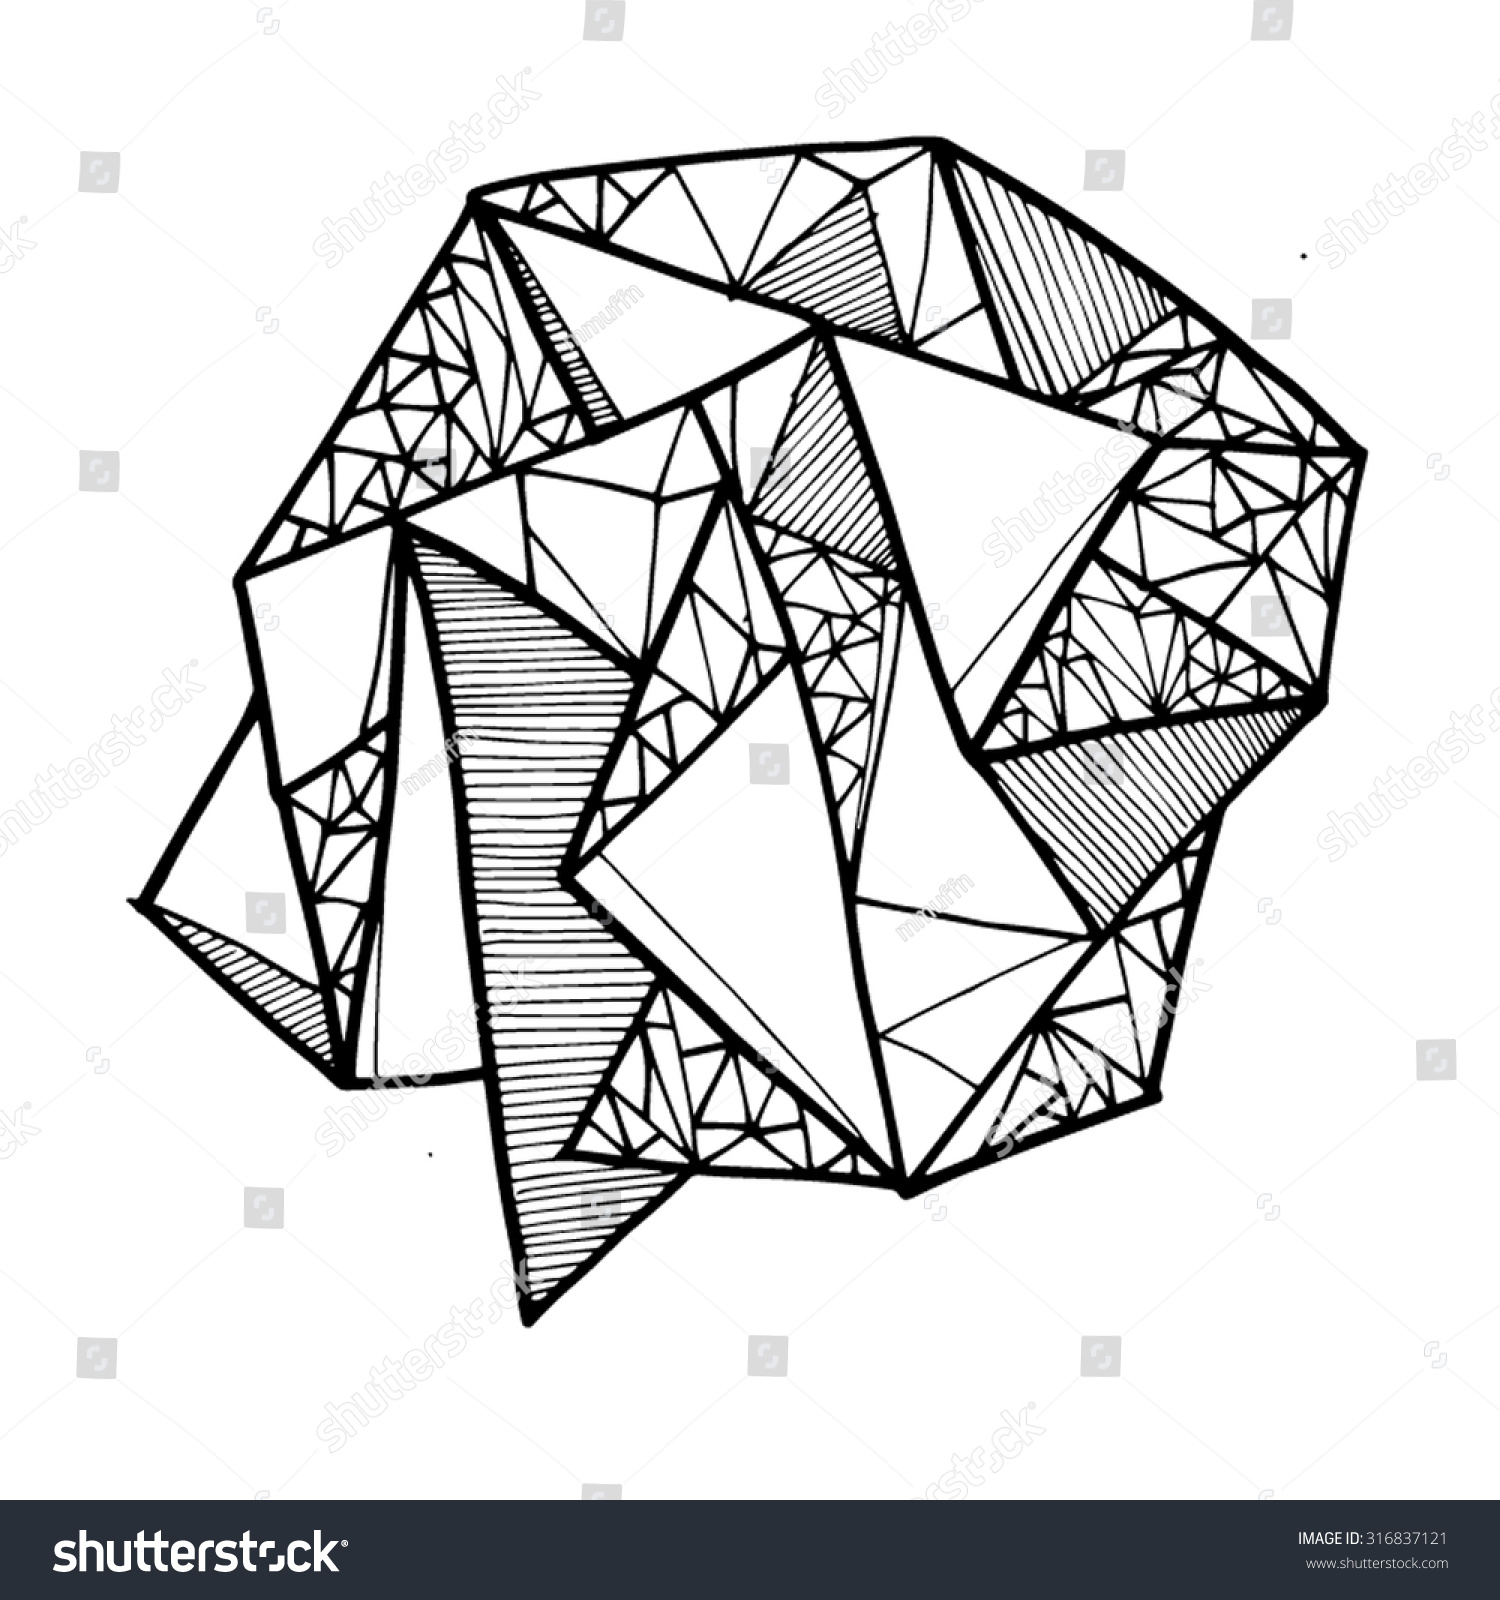 Line Art Media Design : Geometric shape lines lineart shapes line stock vector